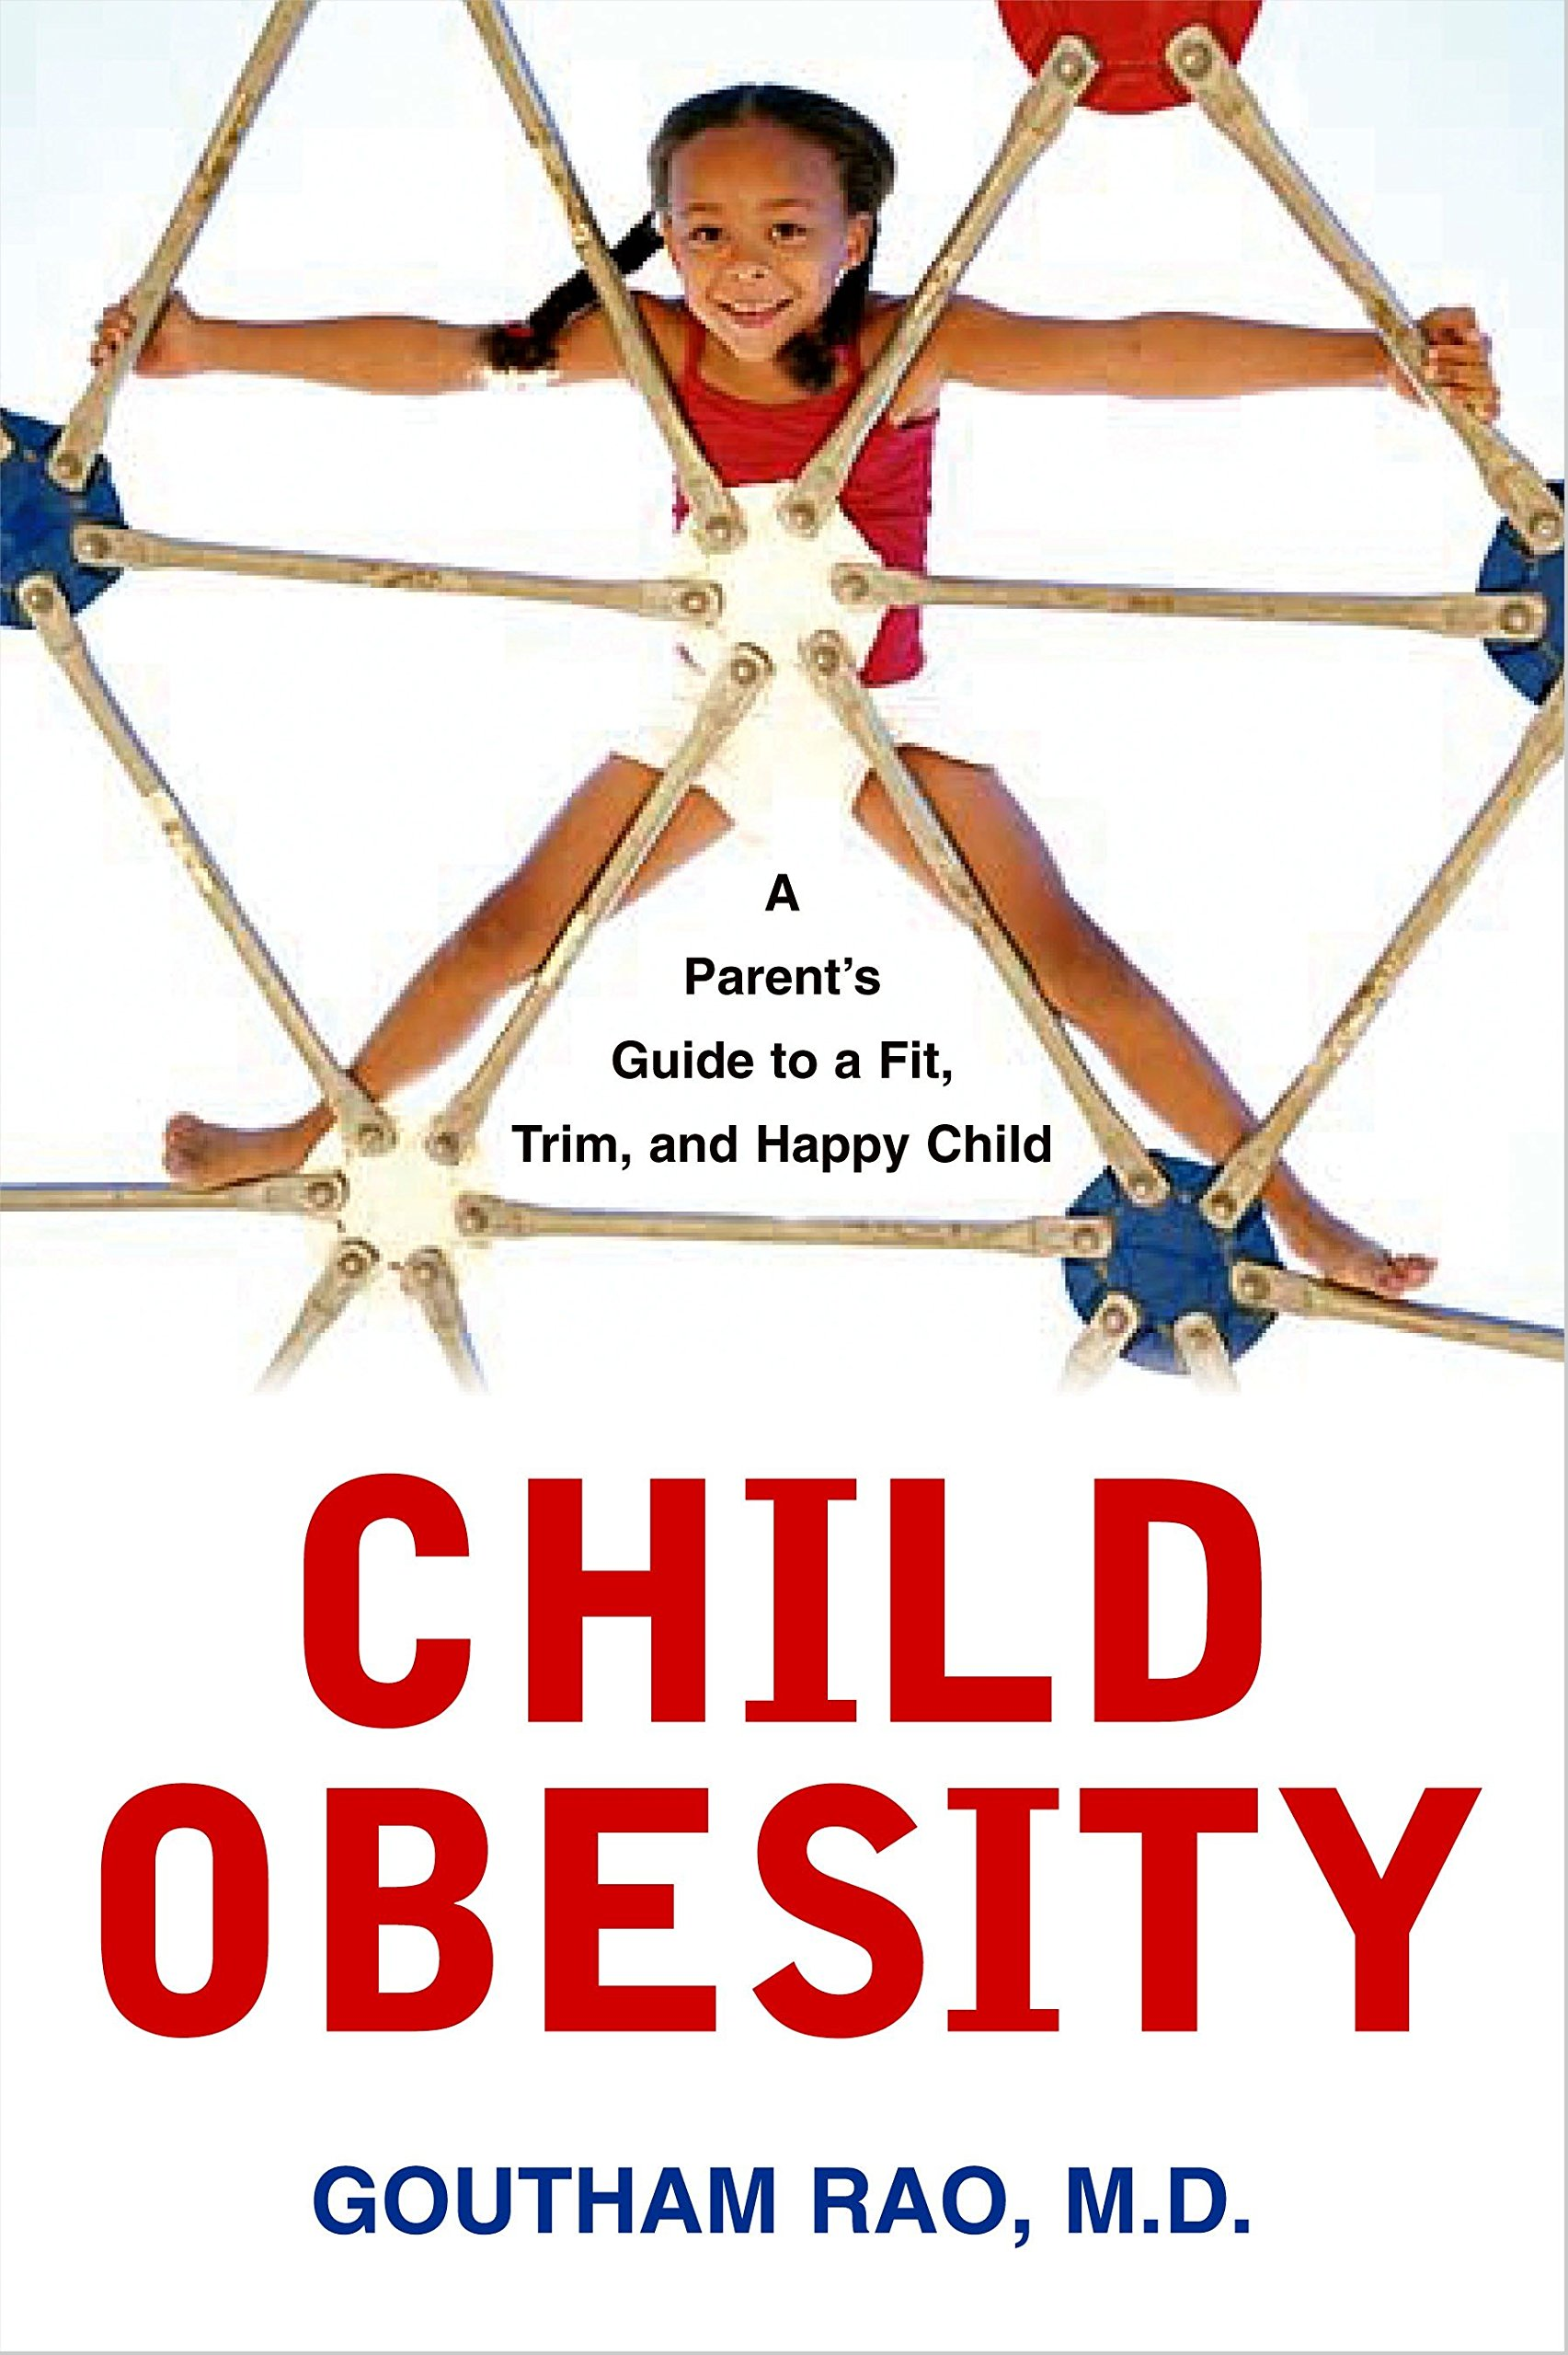 Childhood Obesity Statistics and Facts